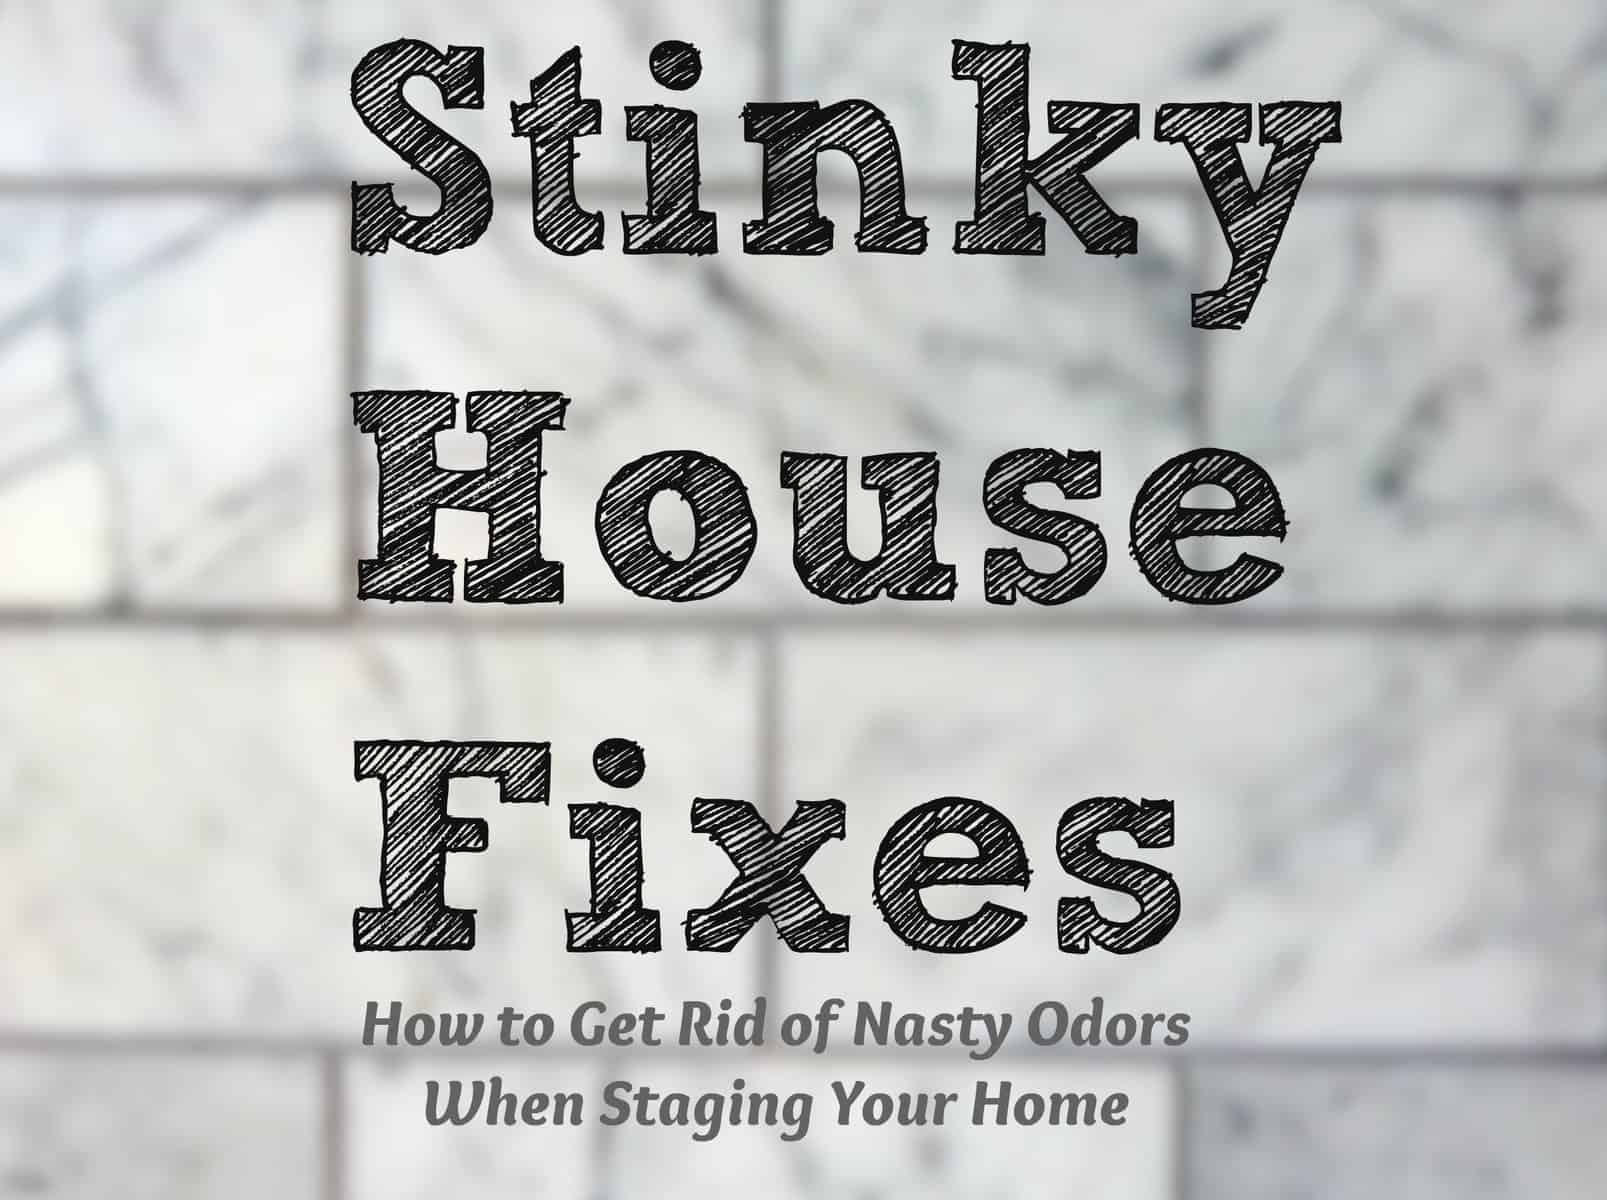 House Odors stinky house: how to get rid of nasty odors when staging